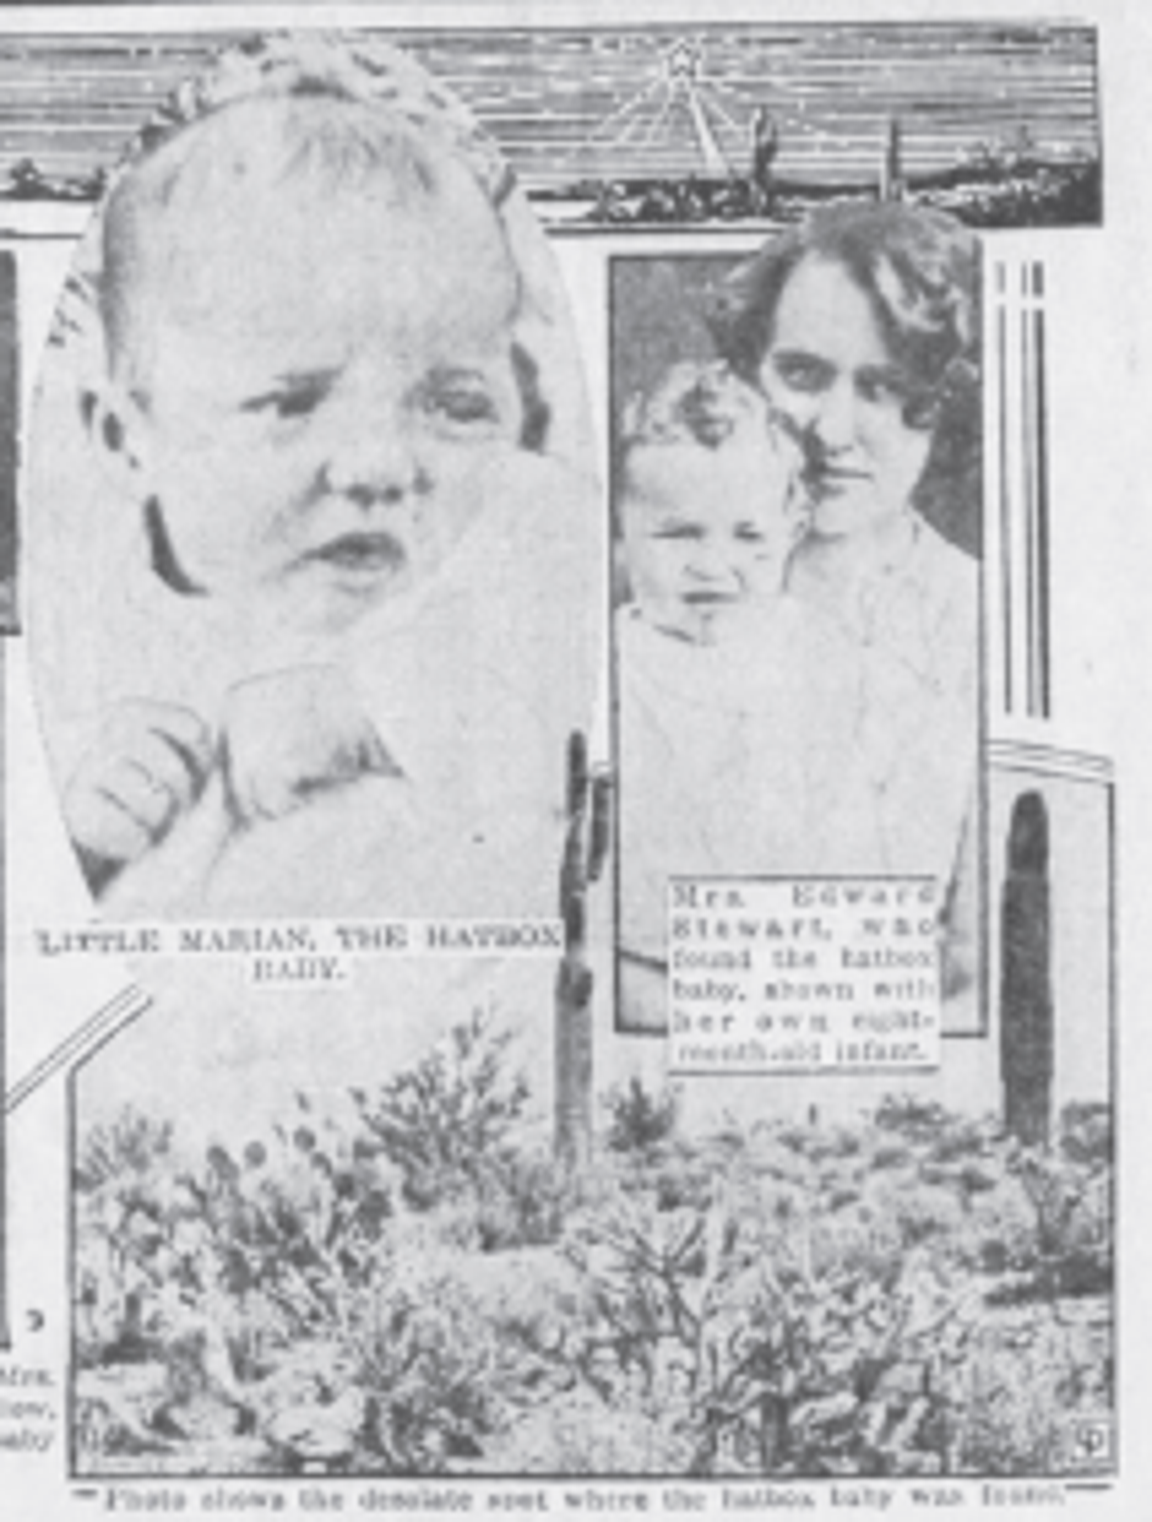 Julia Stewart is pictured (right) in an anniversary story in the Quad-City Times in Davenport, Iowa, Dec. 16, 1932.